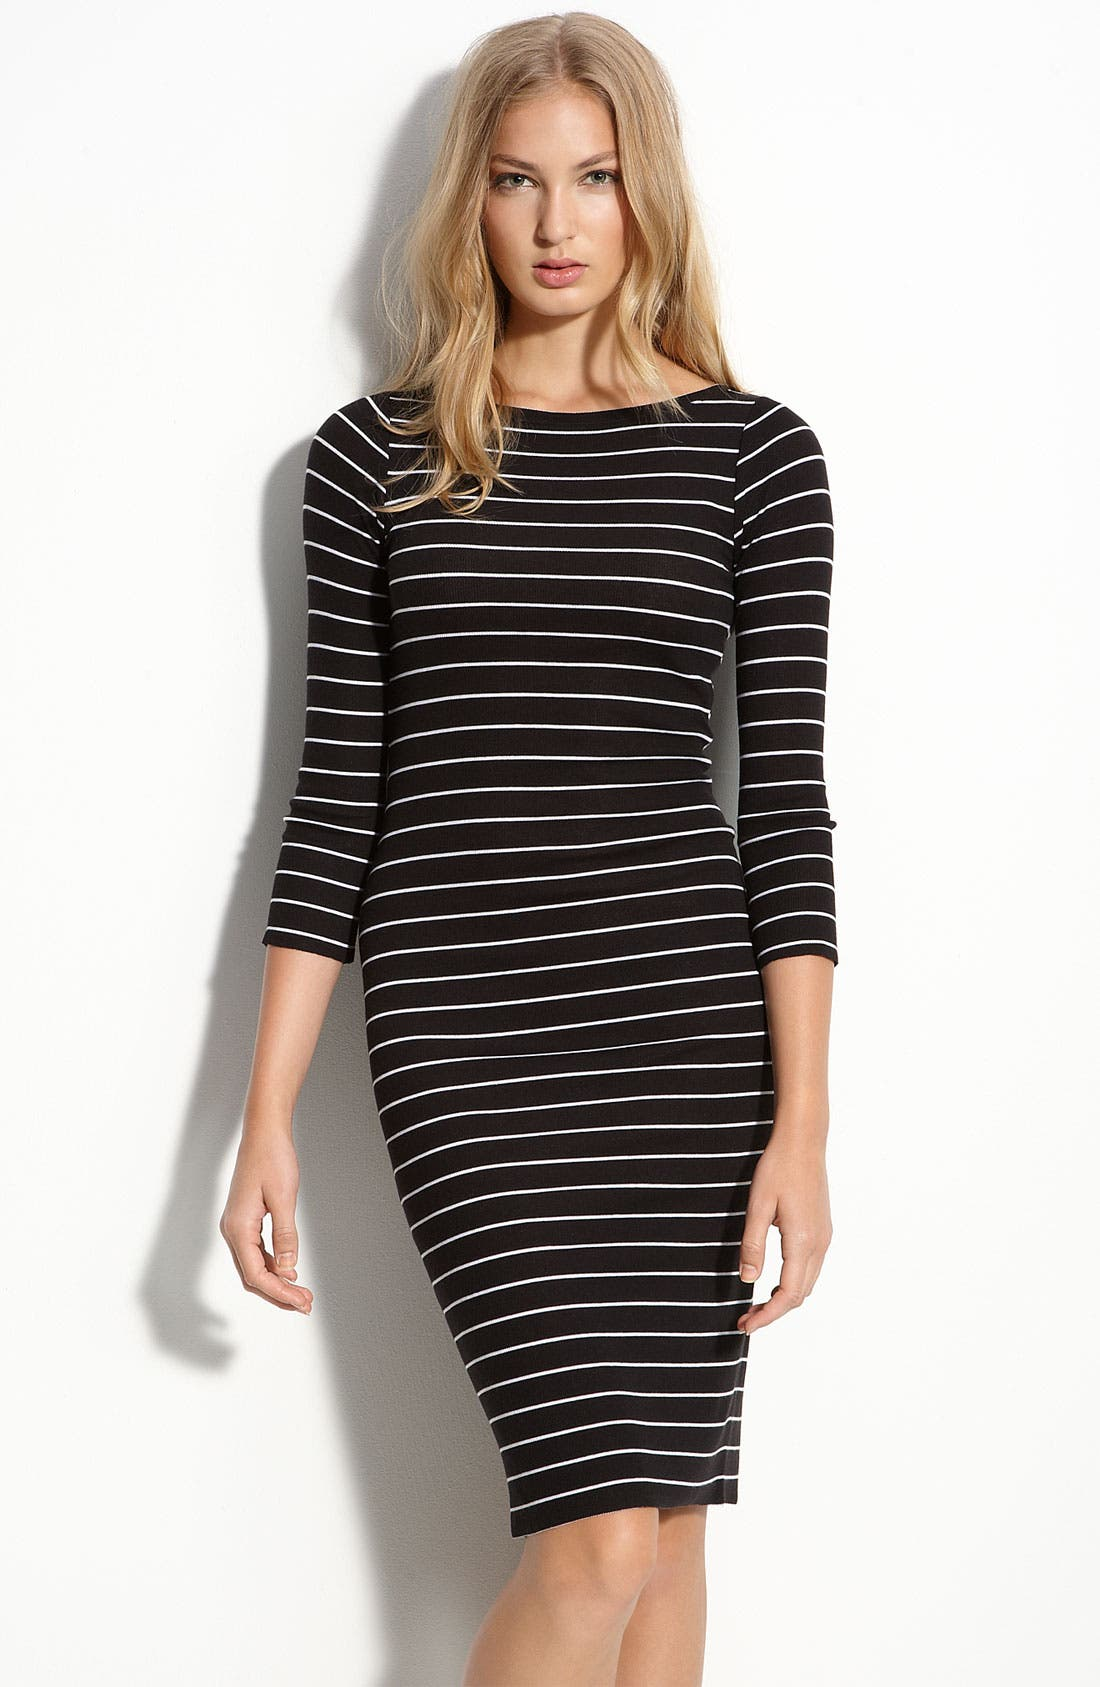 Alternate Image 1 Selected - BCBGMAXAZRIA Striped Knit Dress